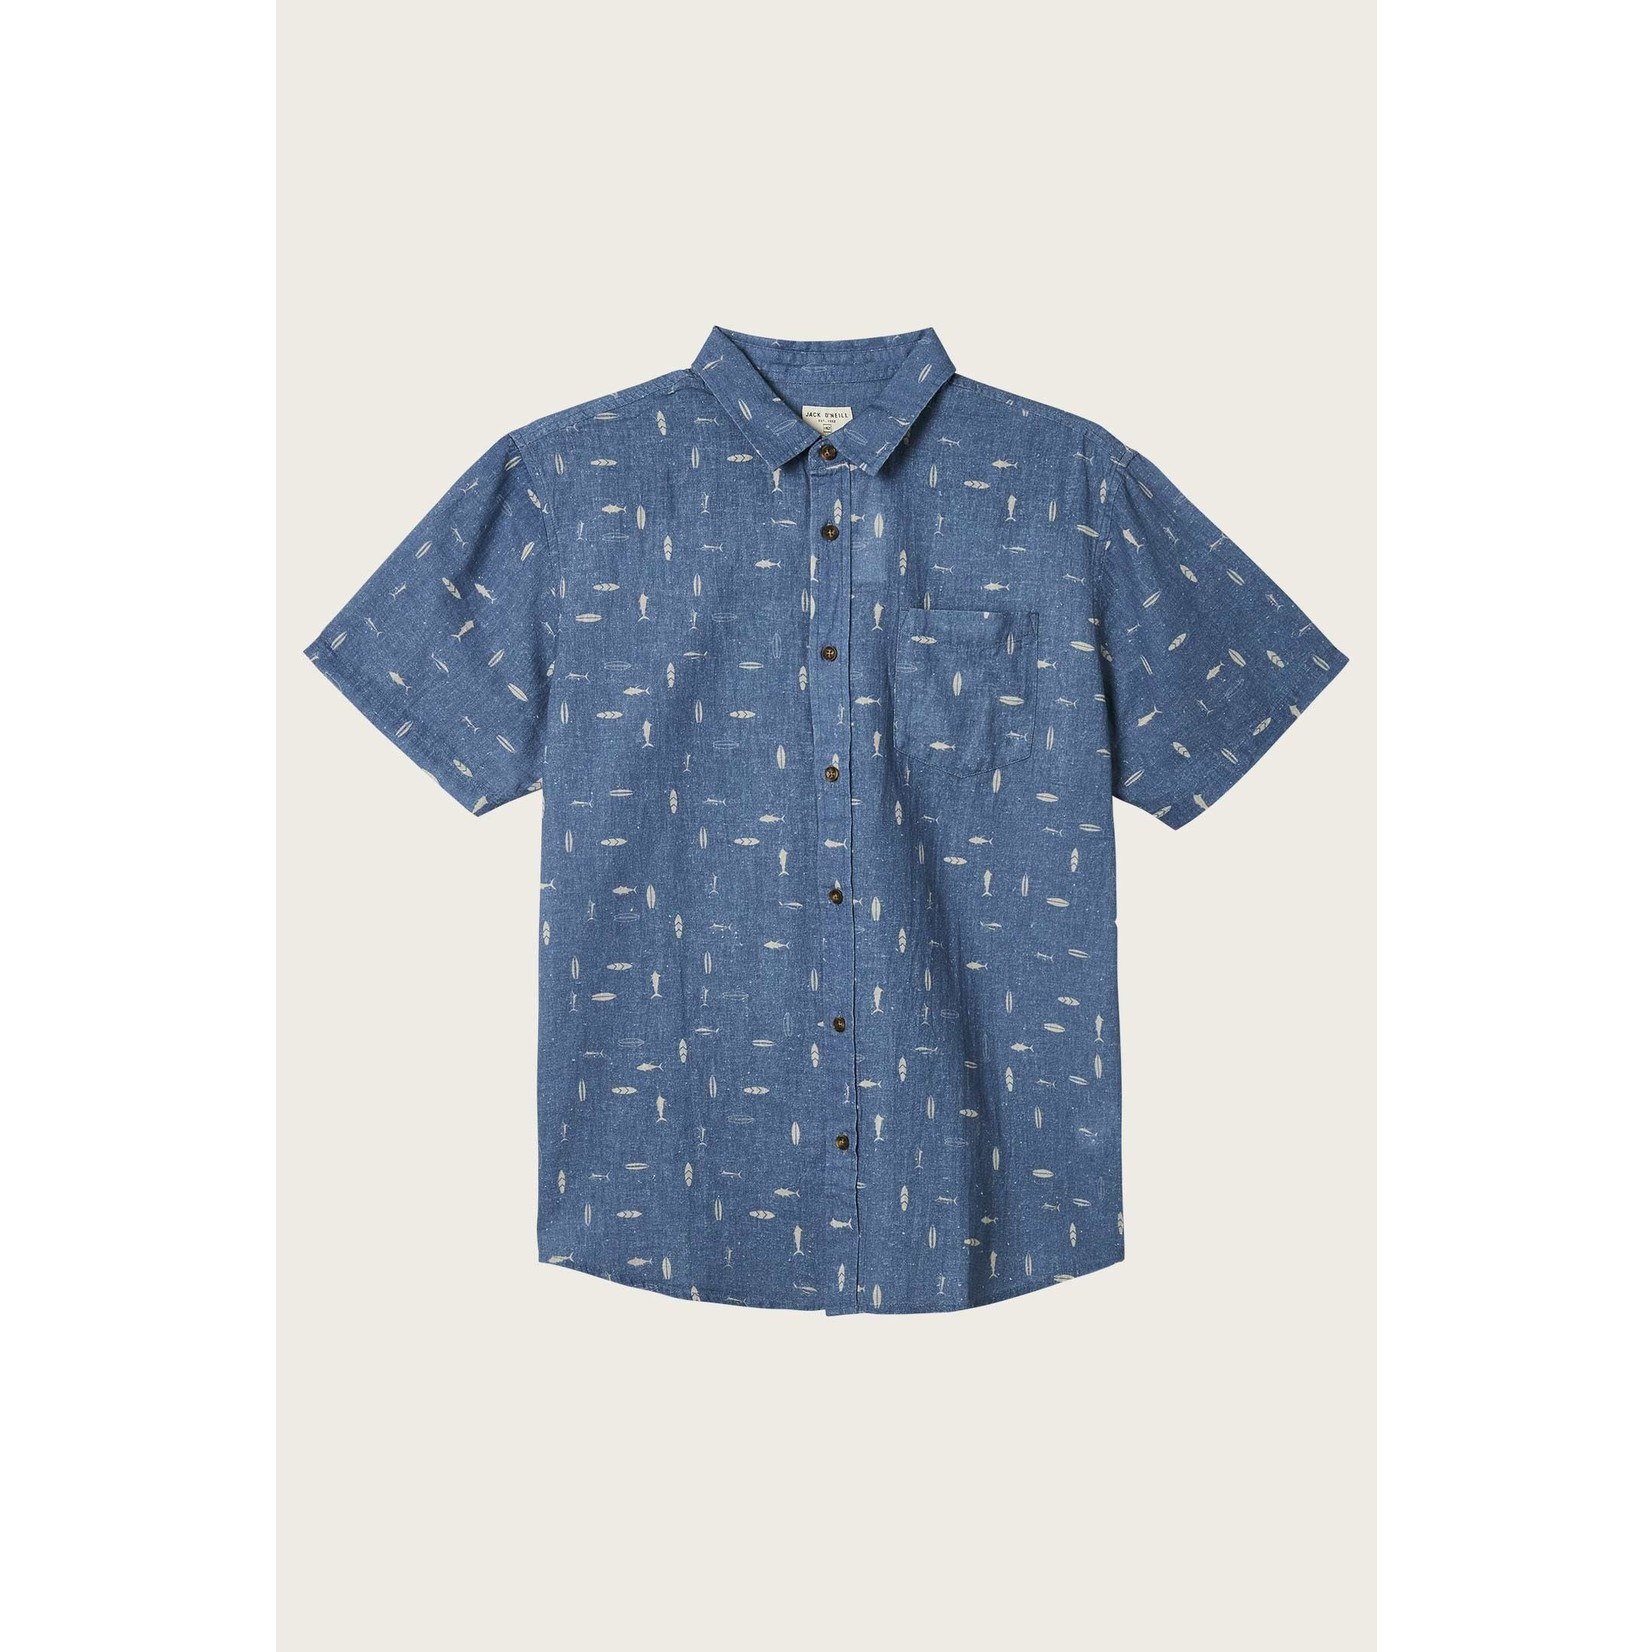 Oneill FISH TALES S/S BUTTON-UP